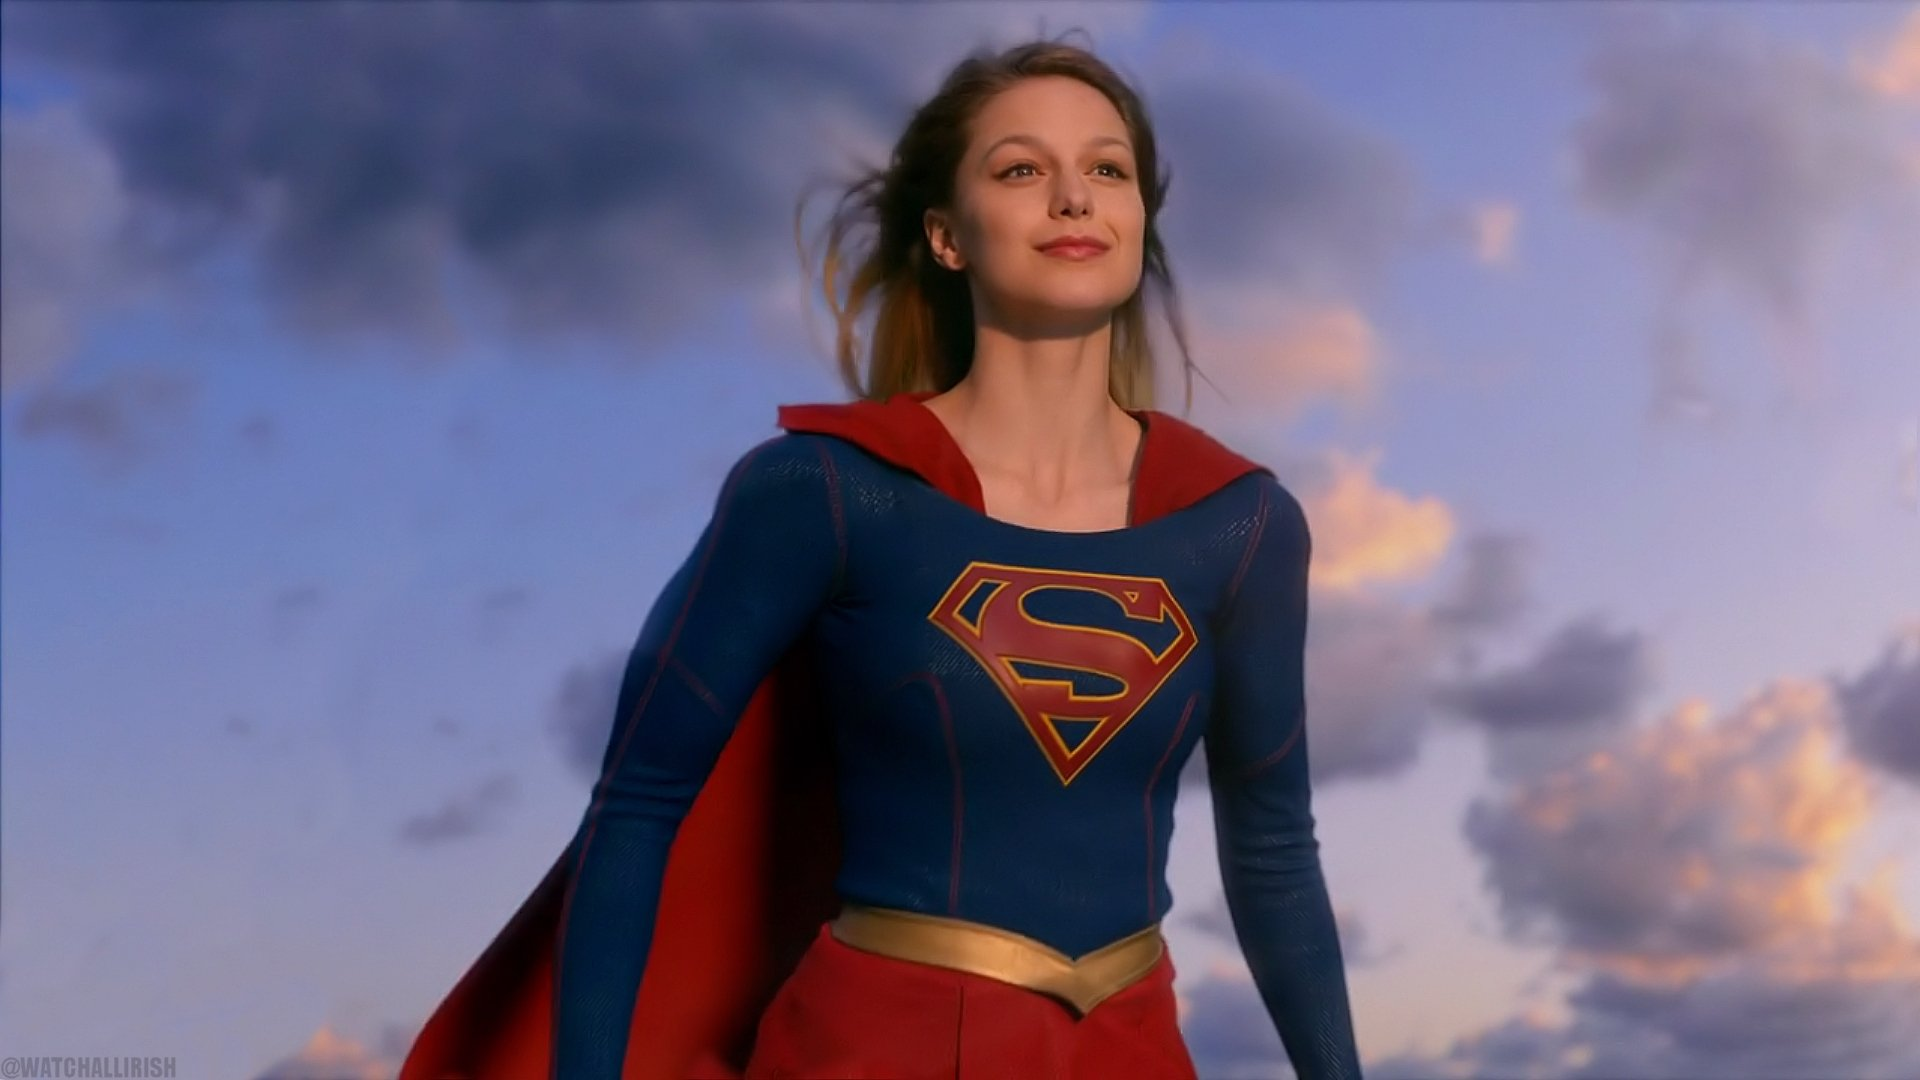 Supergirl 2015 movie download